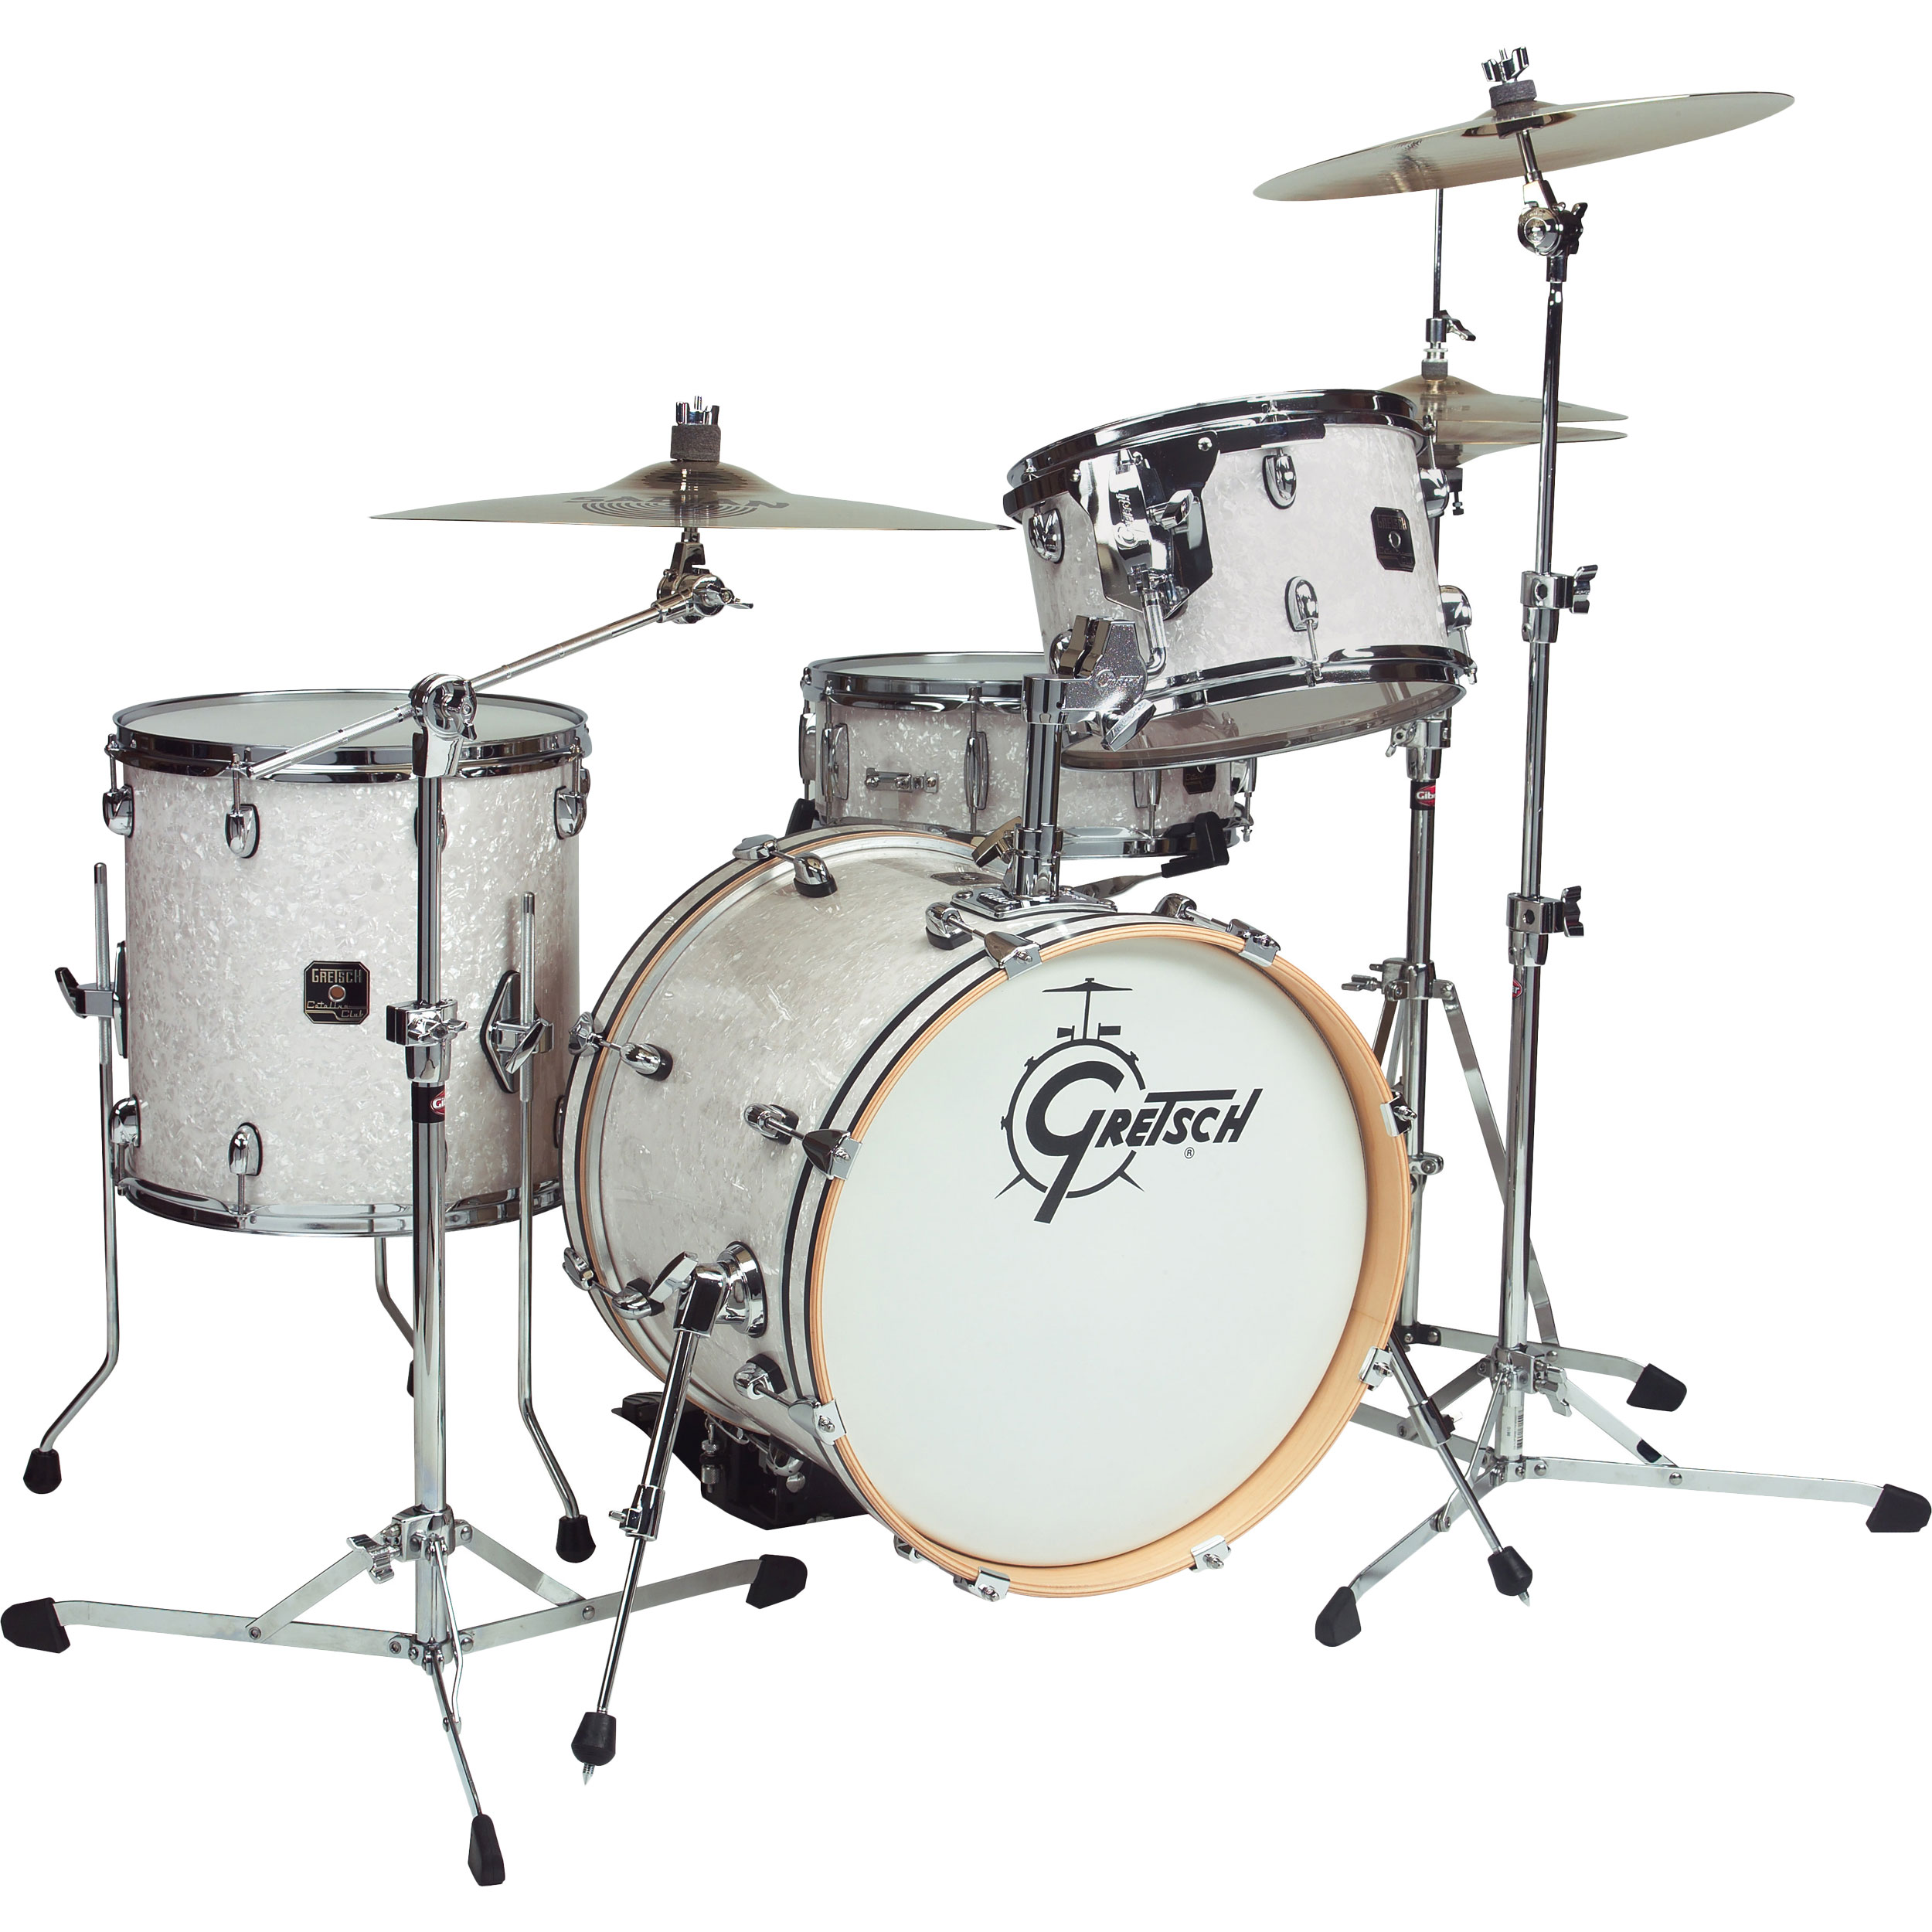 gretsch catalina club jazz 4 piece drum set shell pack 18 bass 14 snare 12 14 toms cc j484. Black Bedroom Furniture Sets. Home Design Ideas